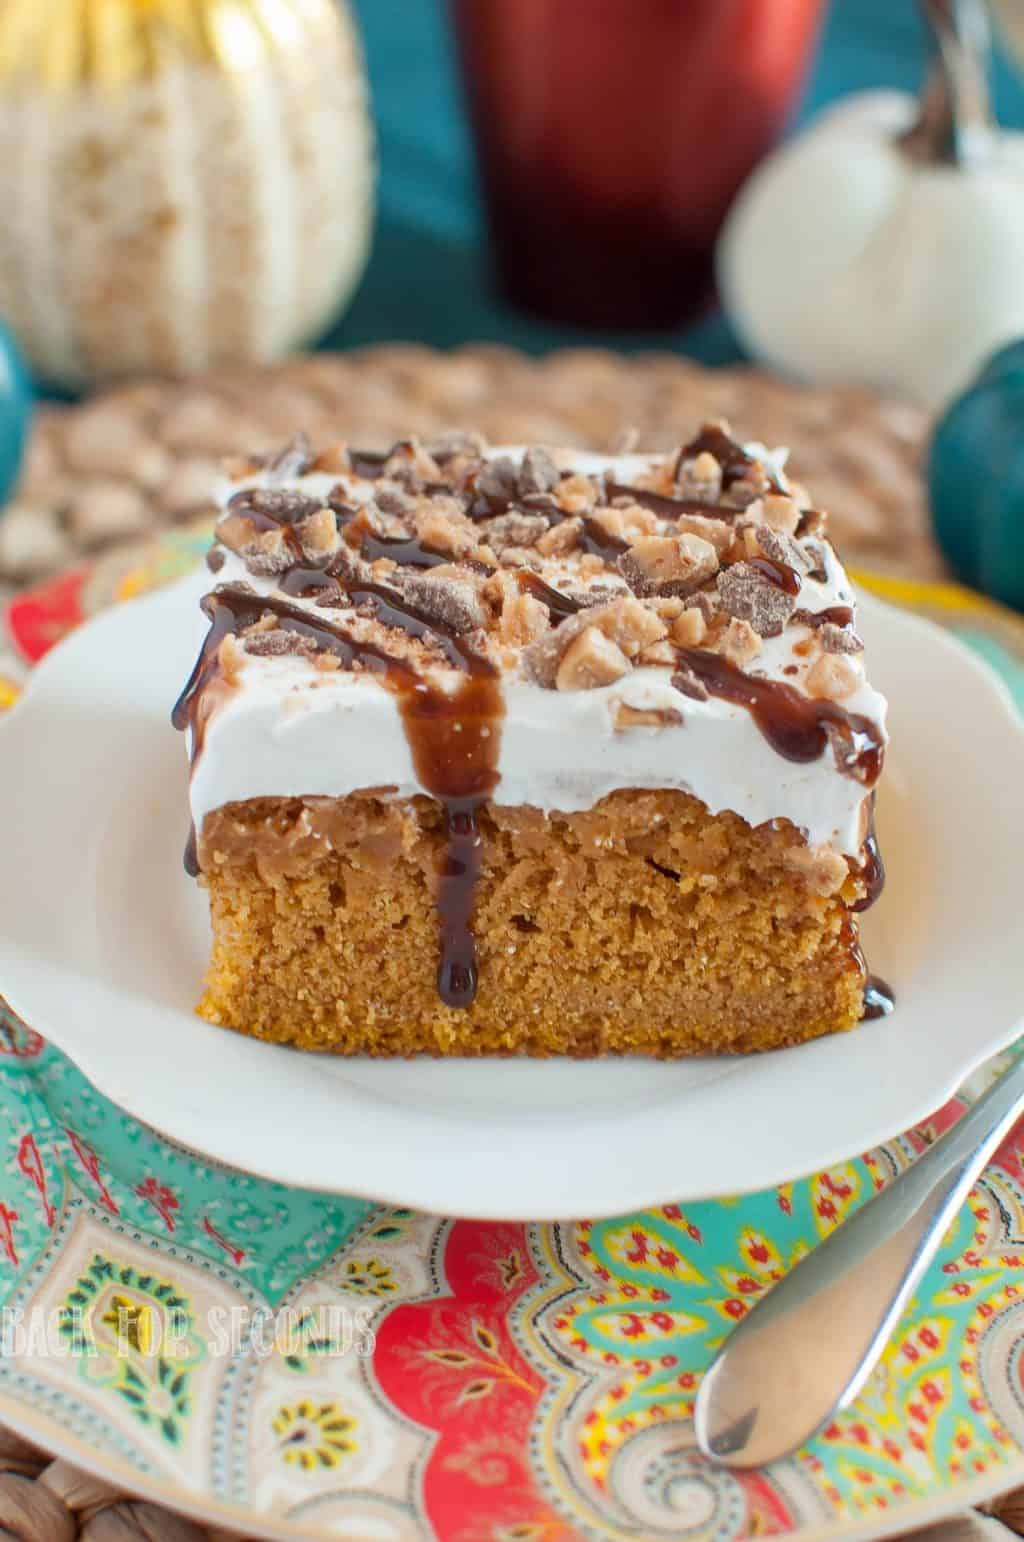 Pumpkin Butterscotch Poke Cake drizzled with chocolate and toffee on a white plate